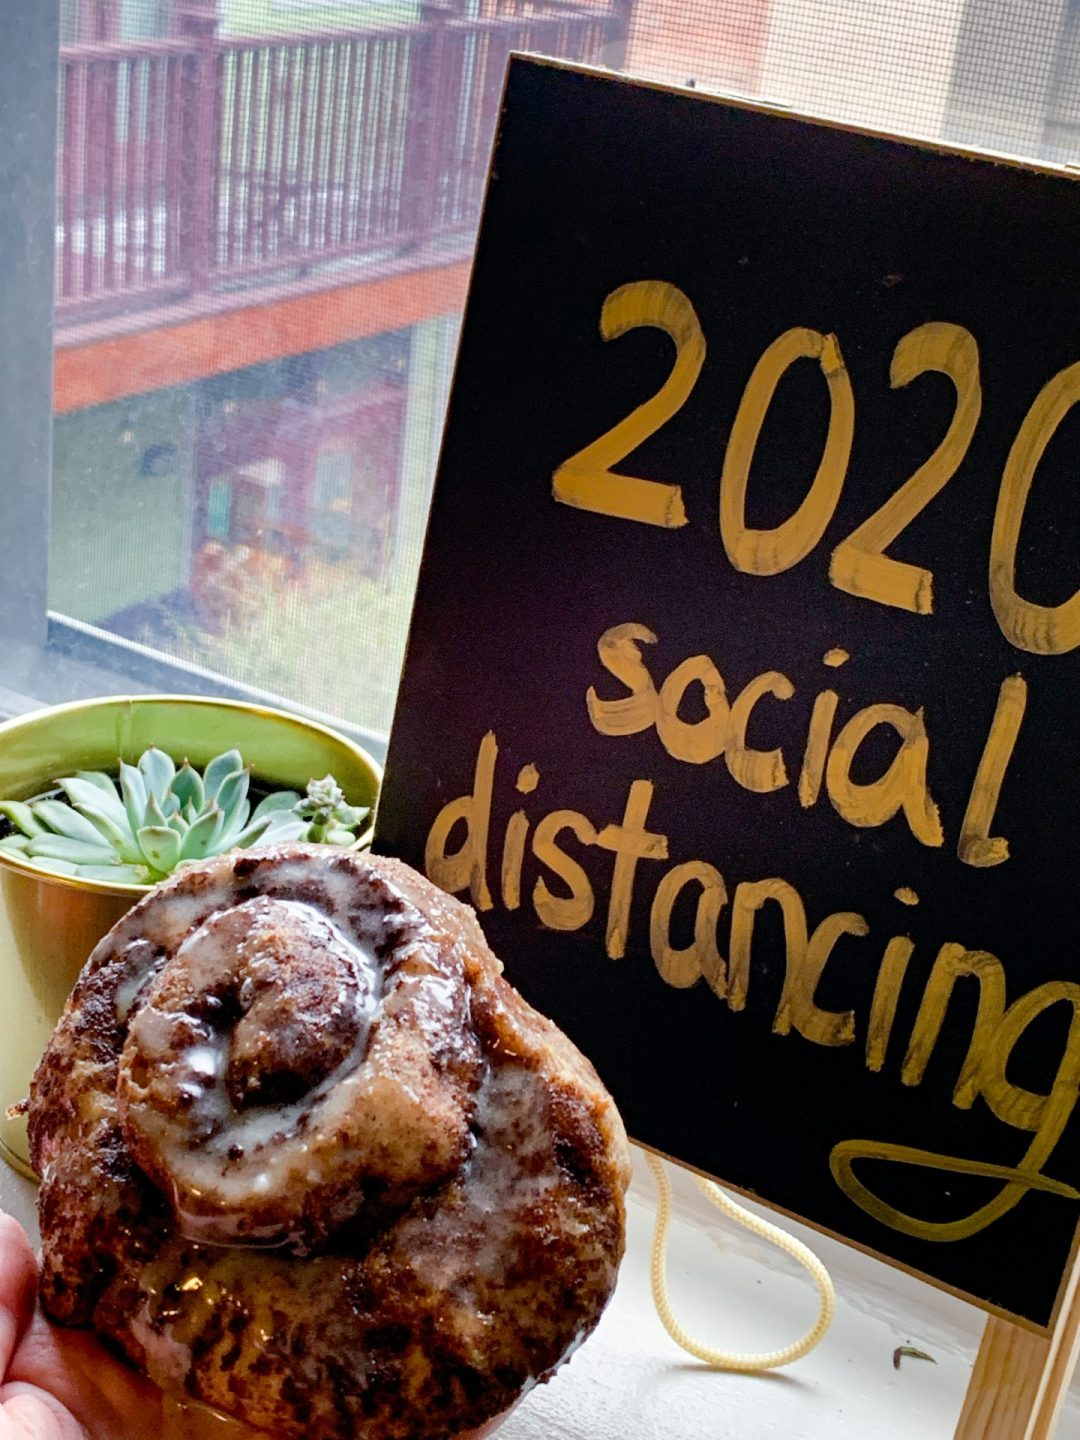 2020 social distancing with Cinnamon Biscuit Rolls